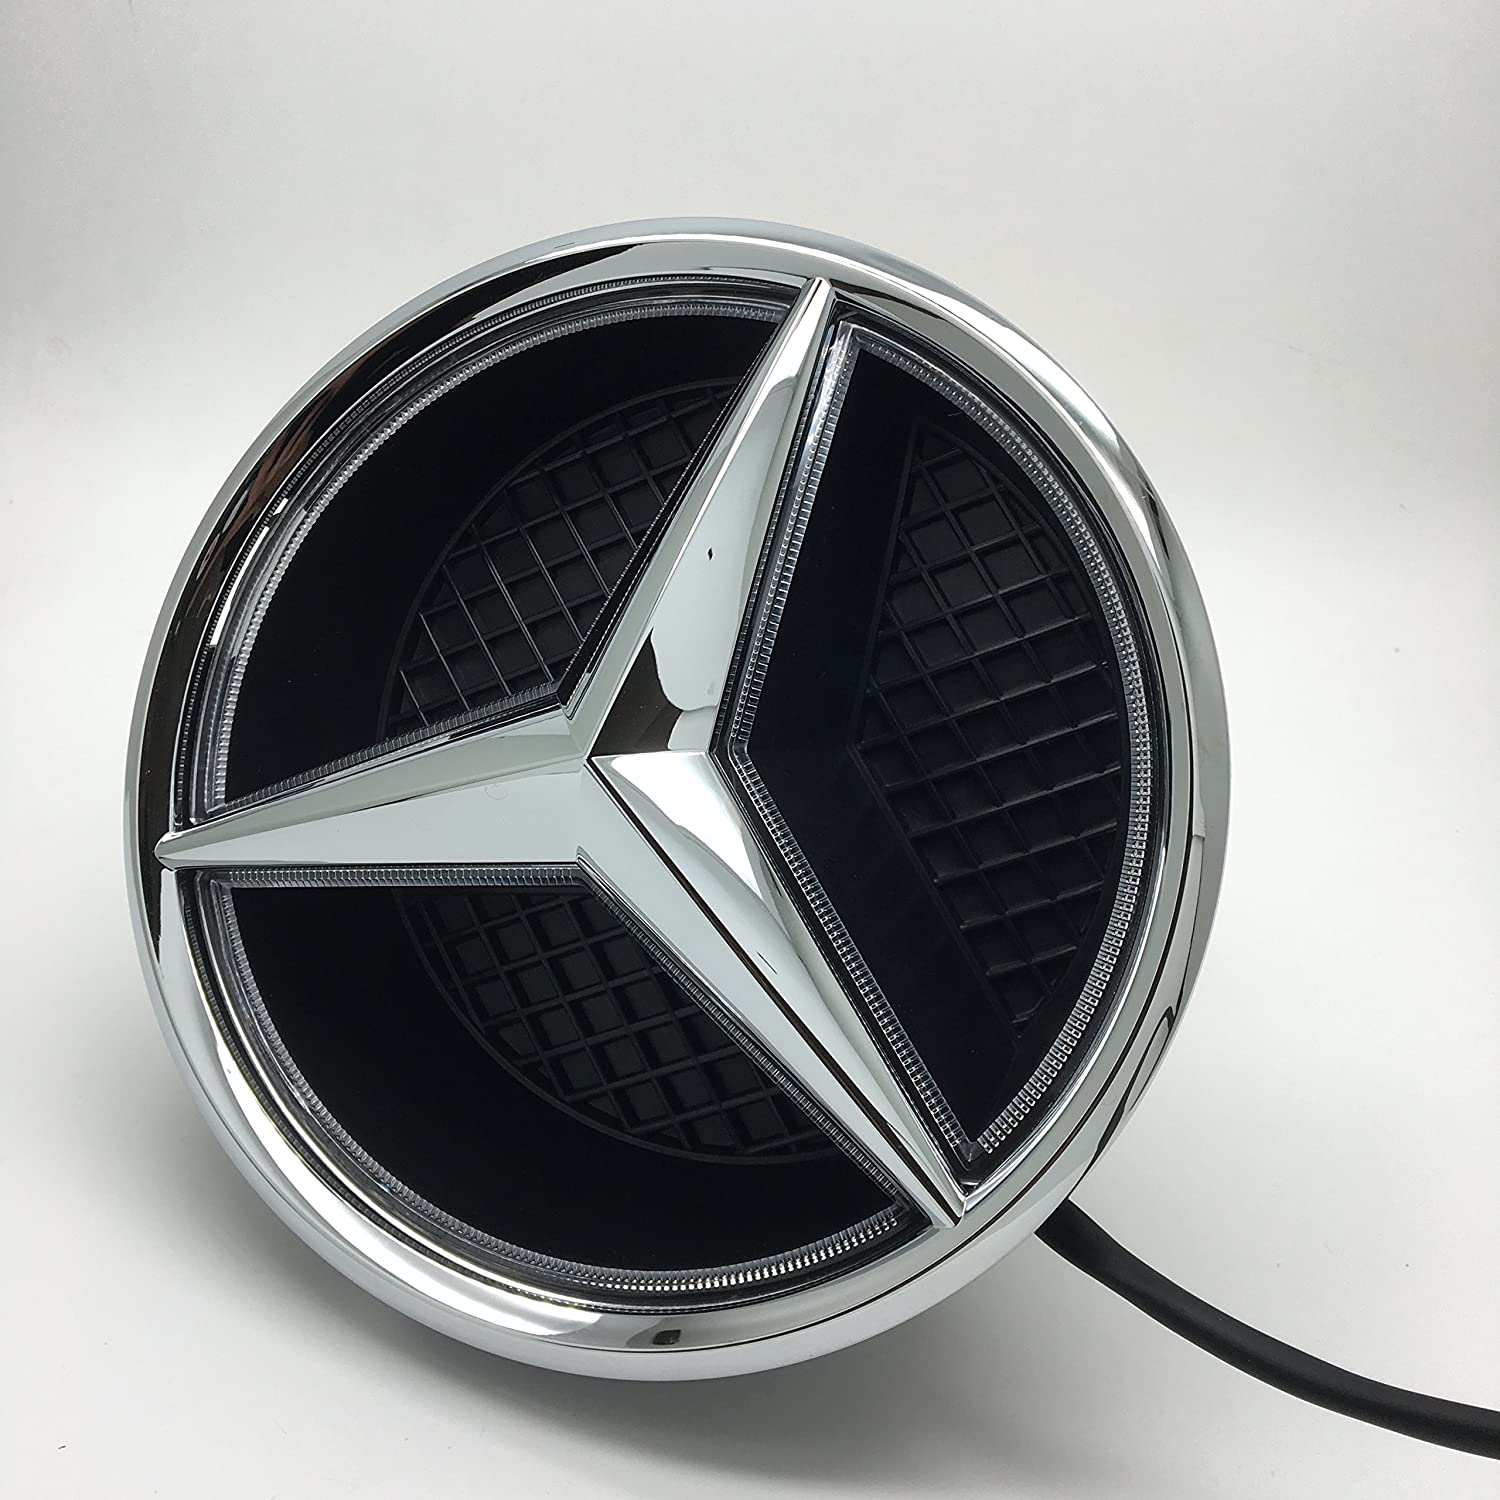 Cszlove Car Front Grilled Star Emblem Led Illuminated Mercedes Cl 500 Fuse Diagram Logo Center Badge Lamp Light For Benz 2015 2017 Glc Gle Gls White